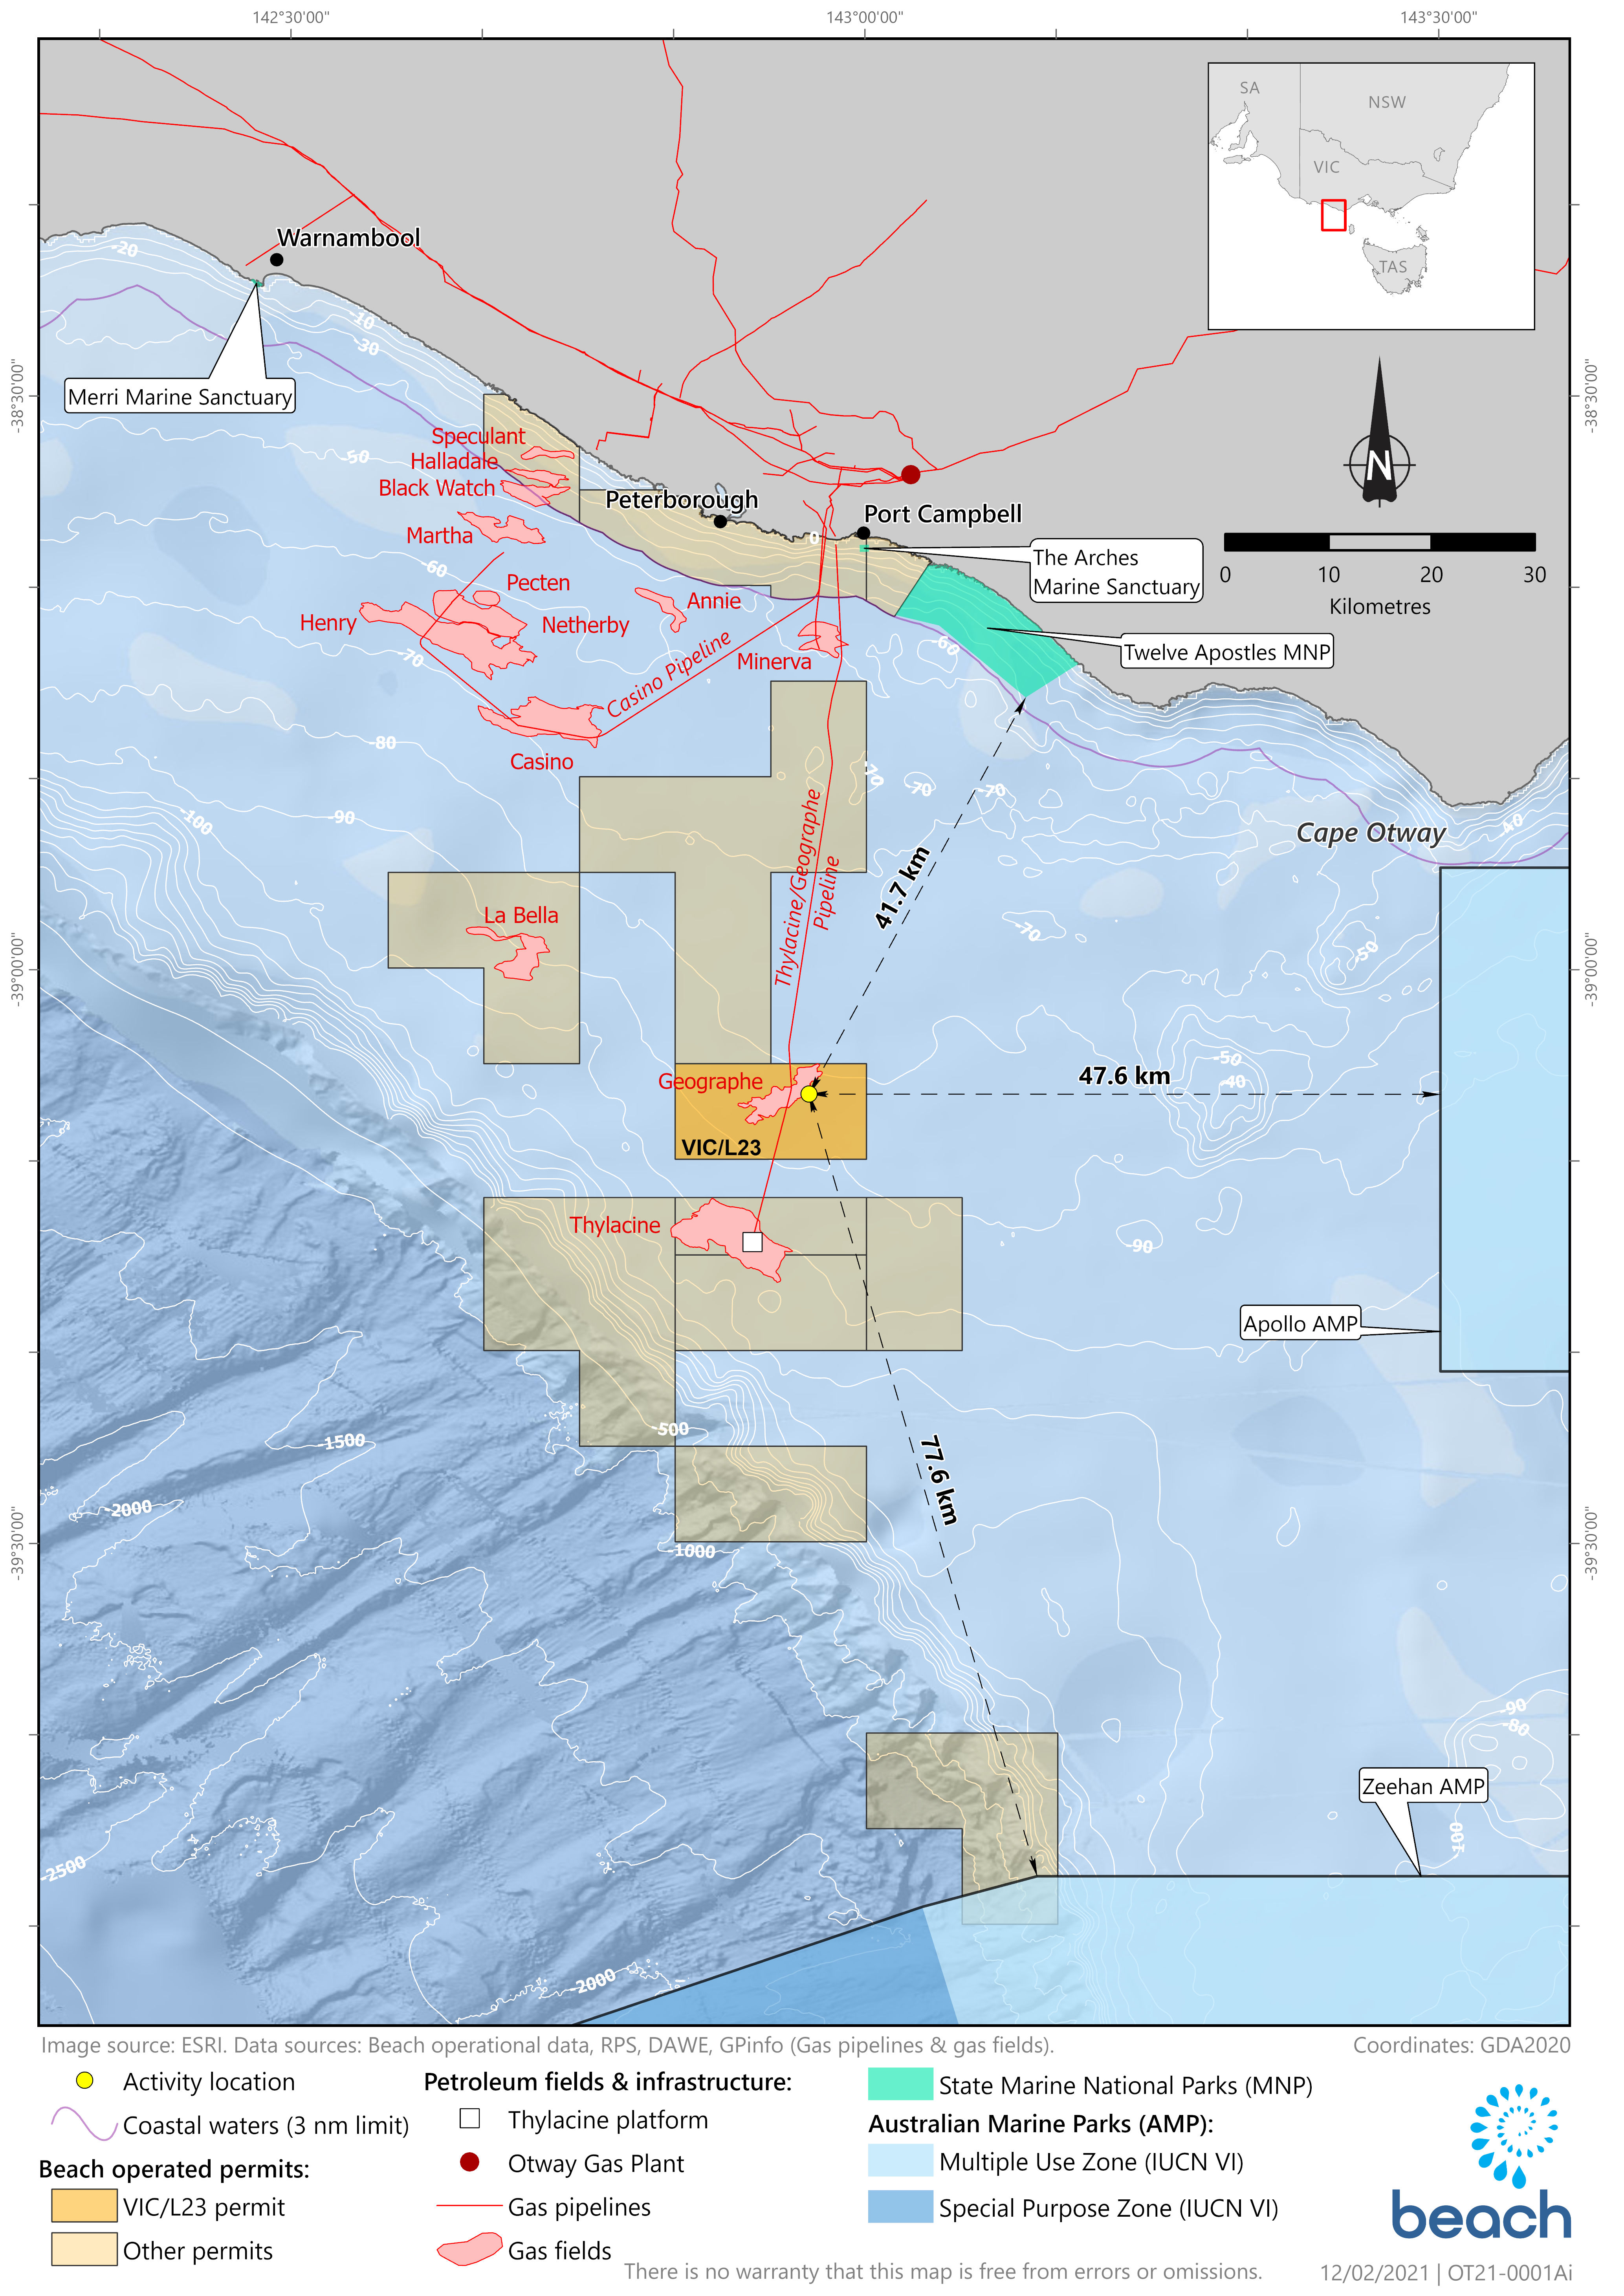 Location map - Activity: Geographe Subsea Installation & Commissioning (refer to description)